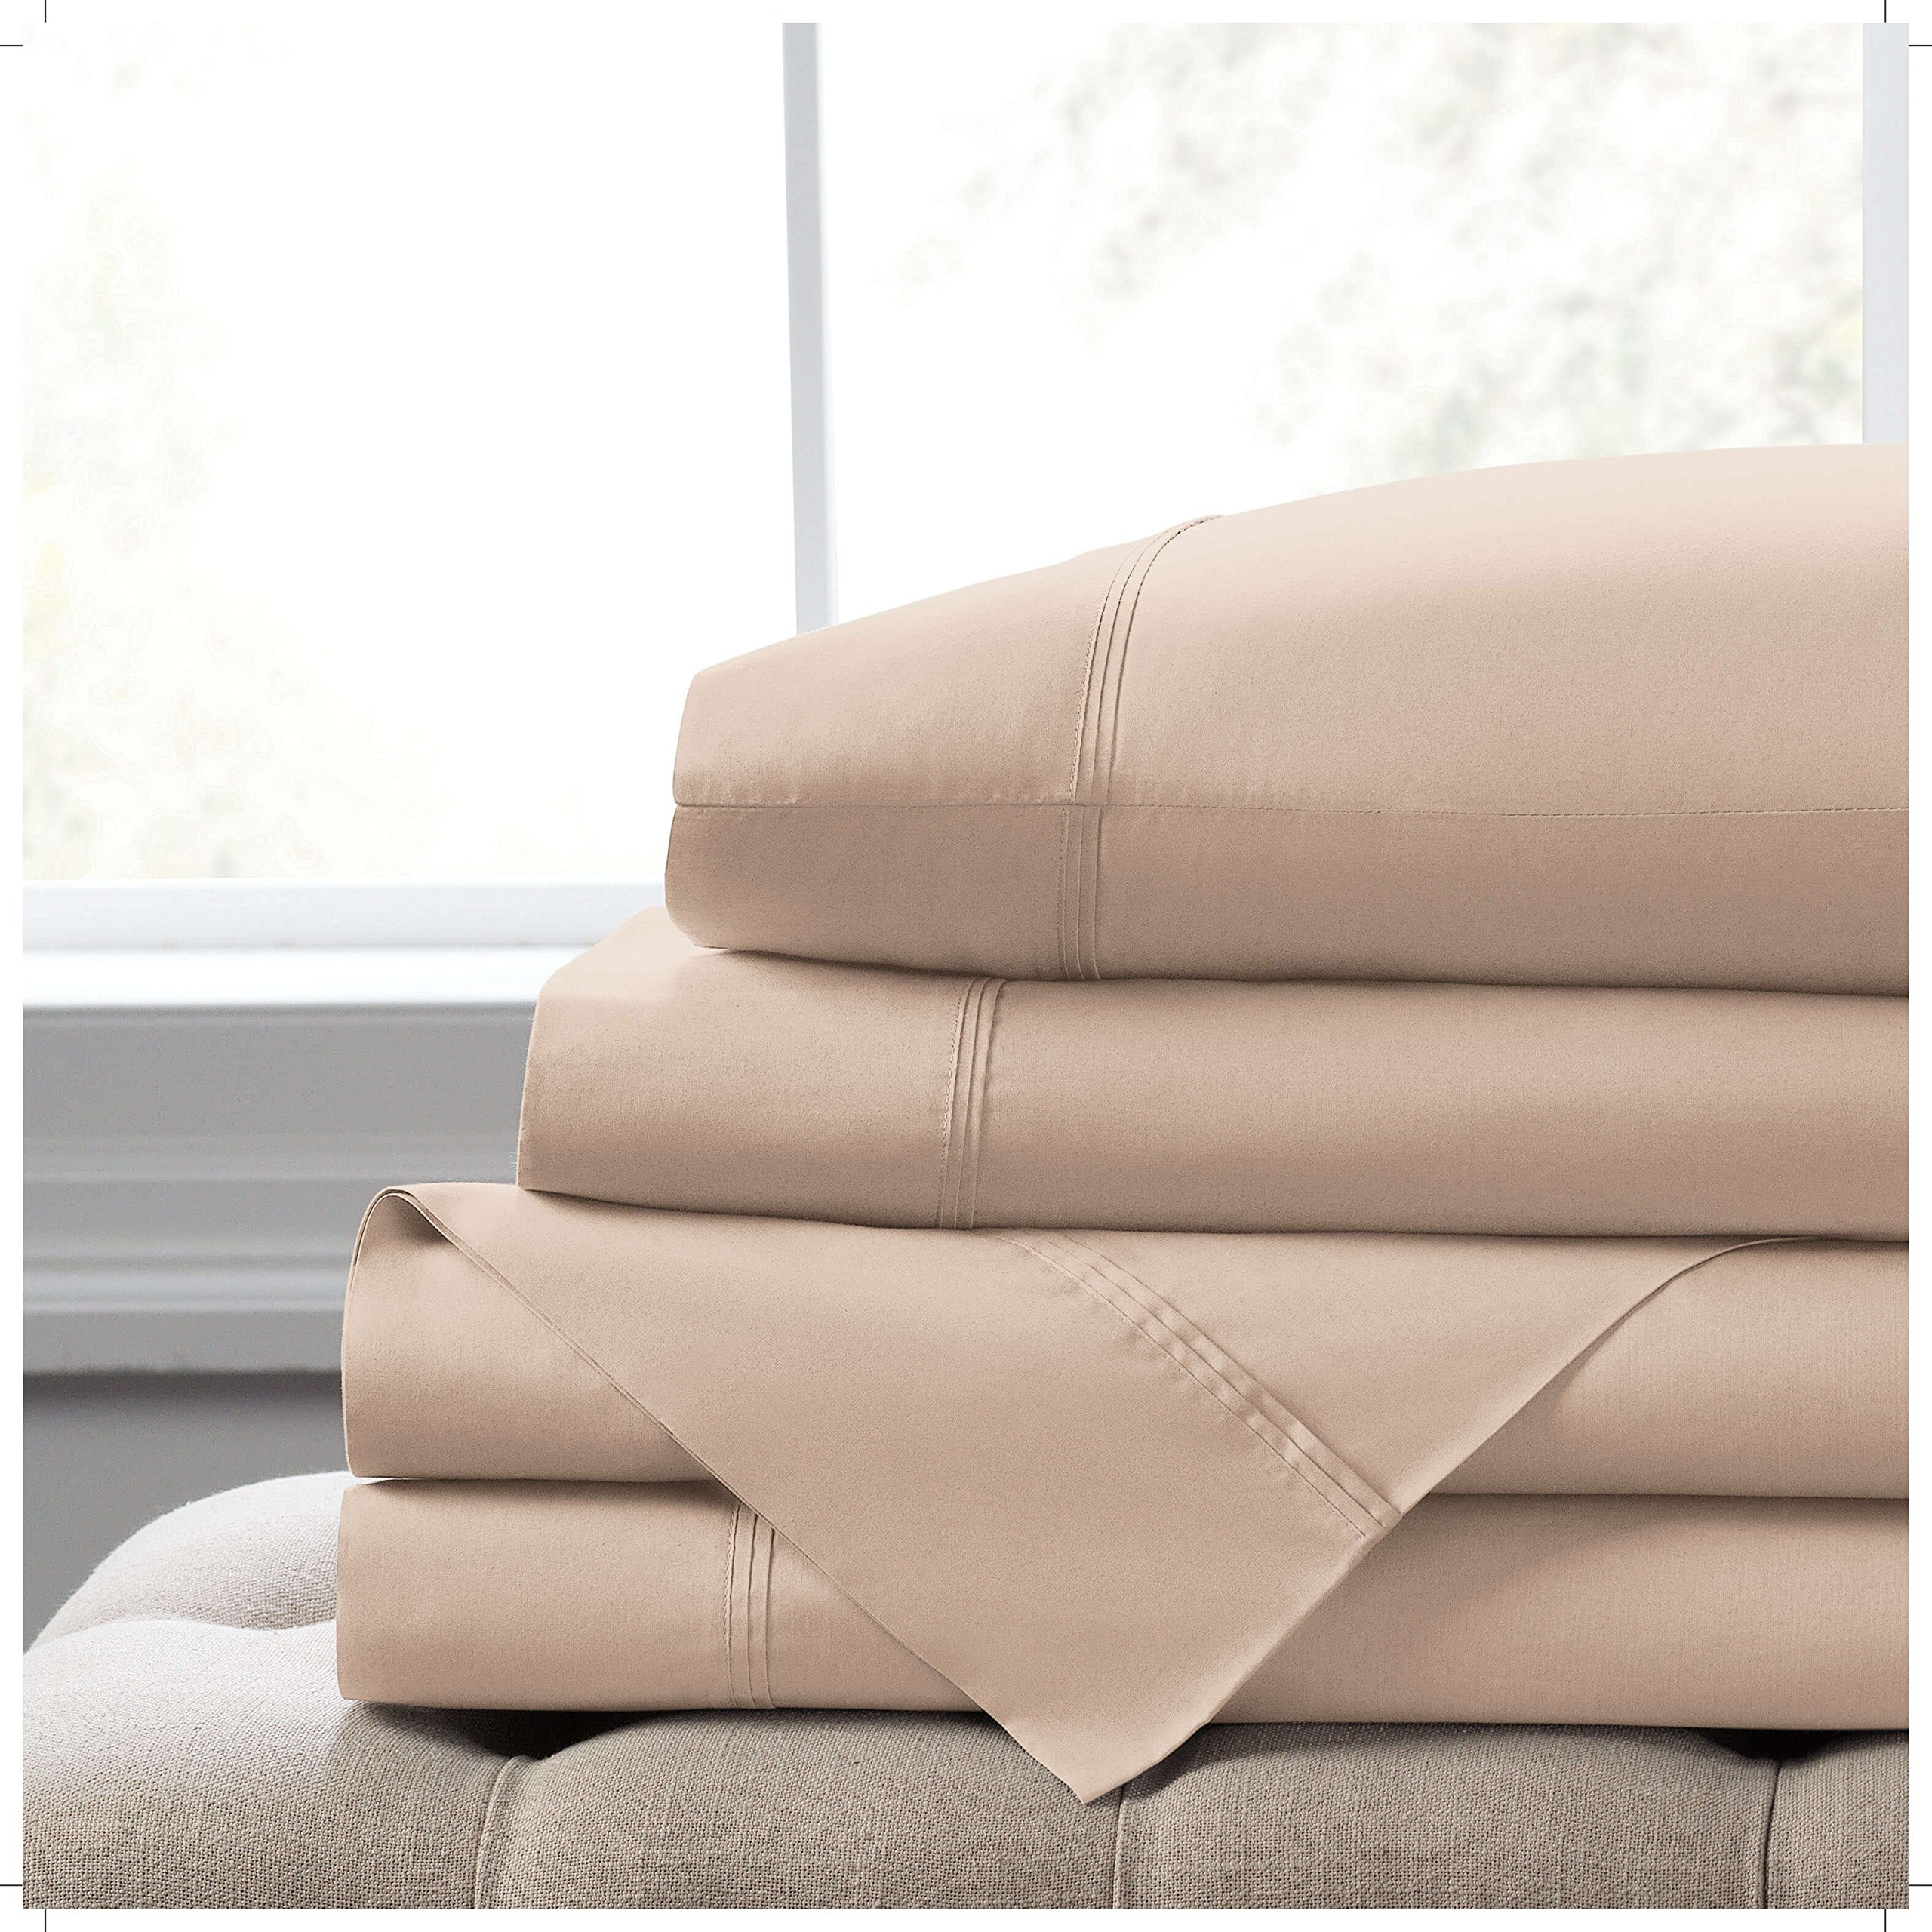 Elizabeth Arden Light-Weight 100% Long-Staple Cotton Percale Set of 2 Pillowcases - Ultra-Fine Natural Pure 300 Thread Count – Crisp & Cool - King Pillowcase Set of 2 - Taupe